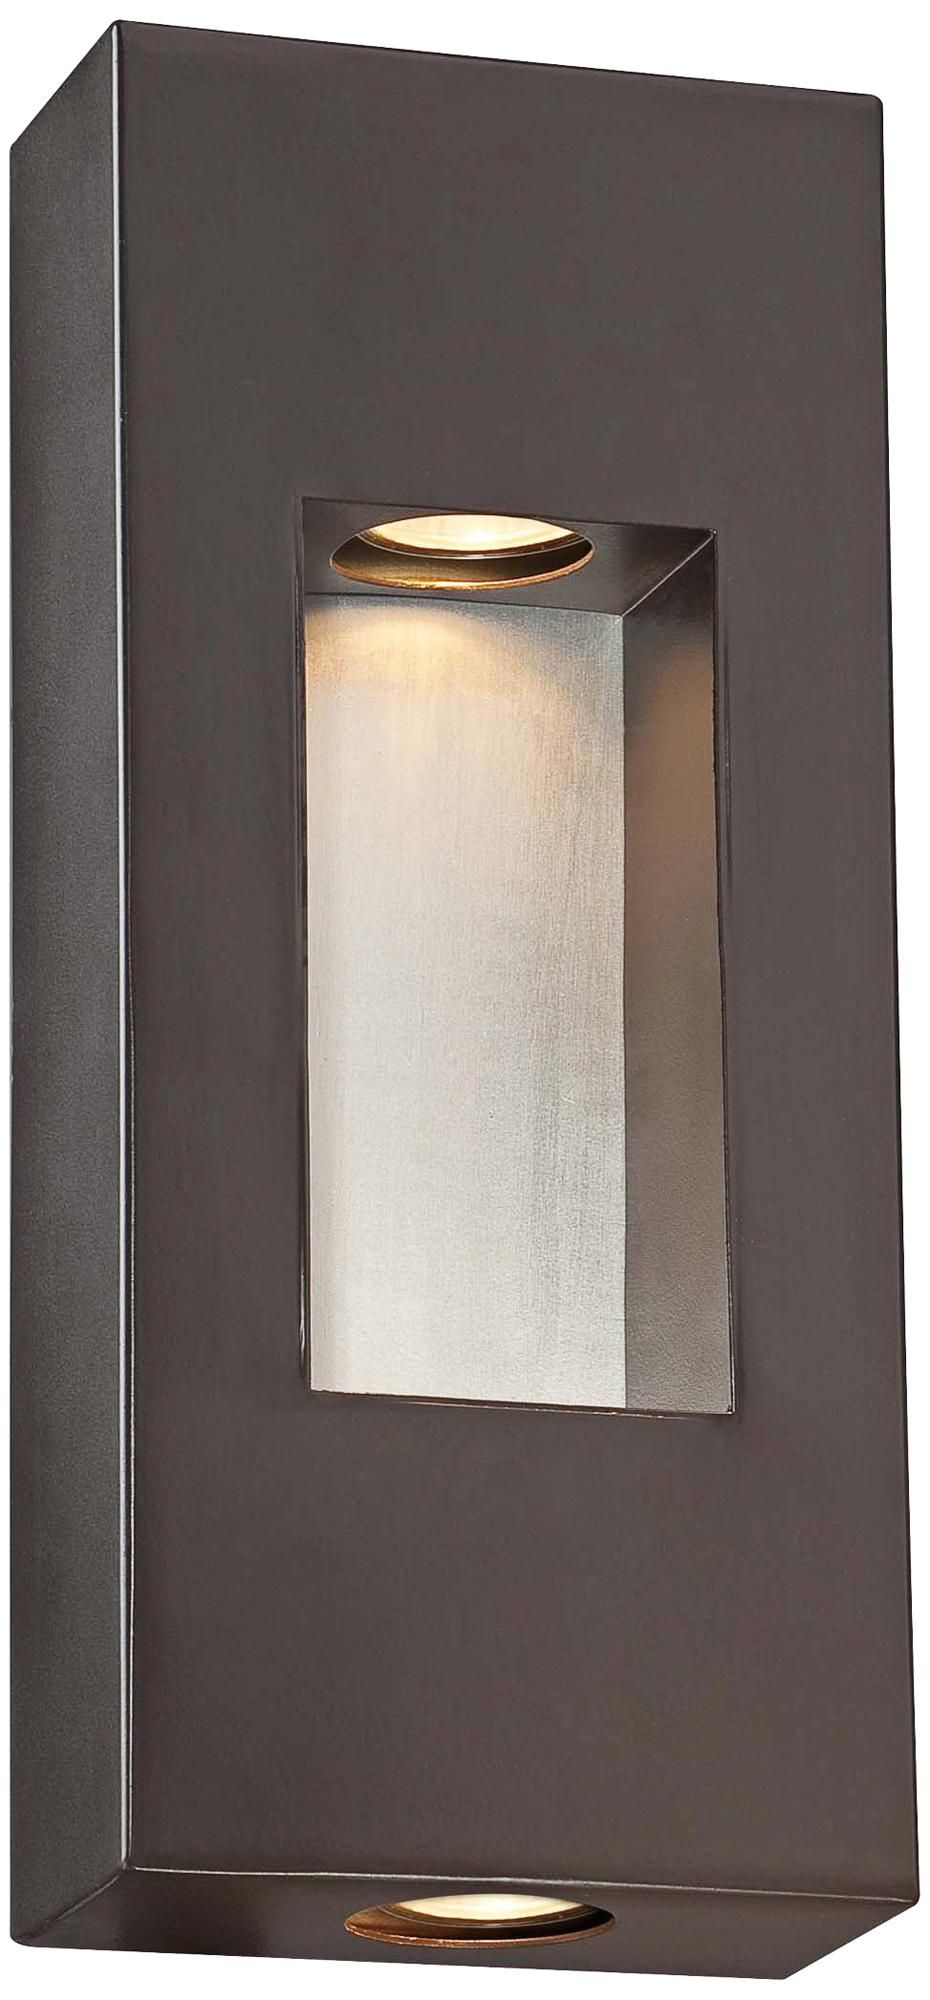 Gorgeous And Clean Lines For Outdoor Wall Lighting Minka Geox 14 High Bronze Pocket Light Lampsplus Com